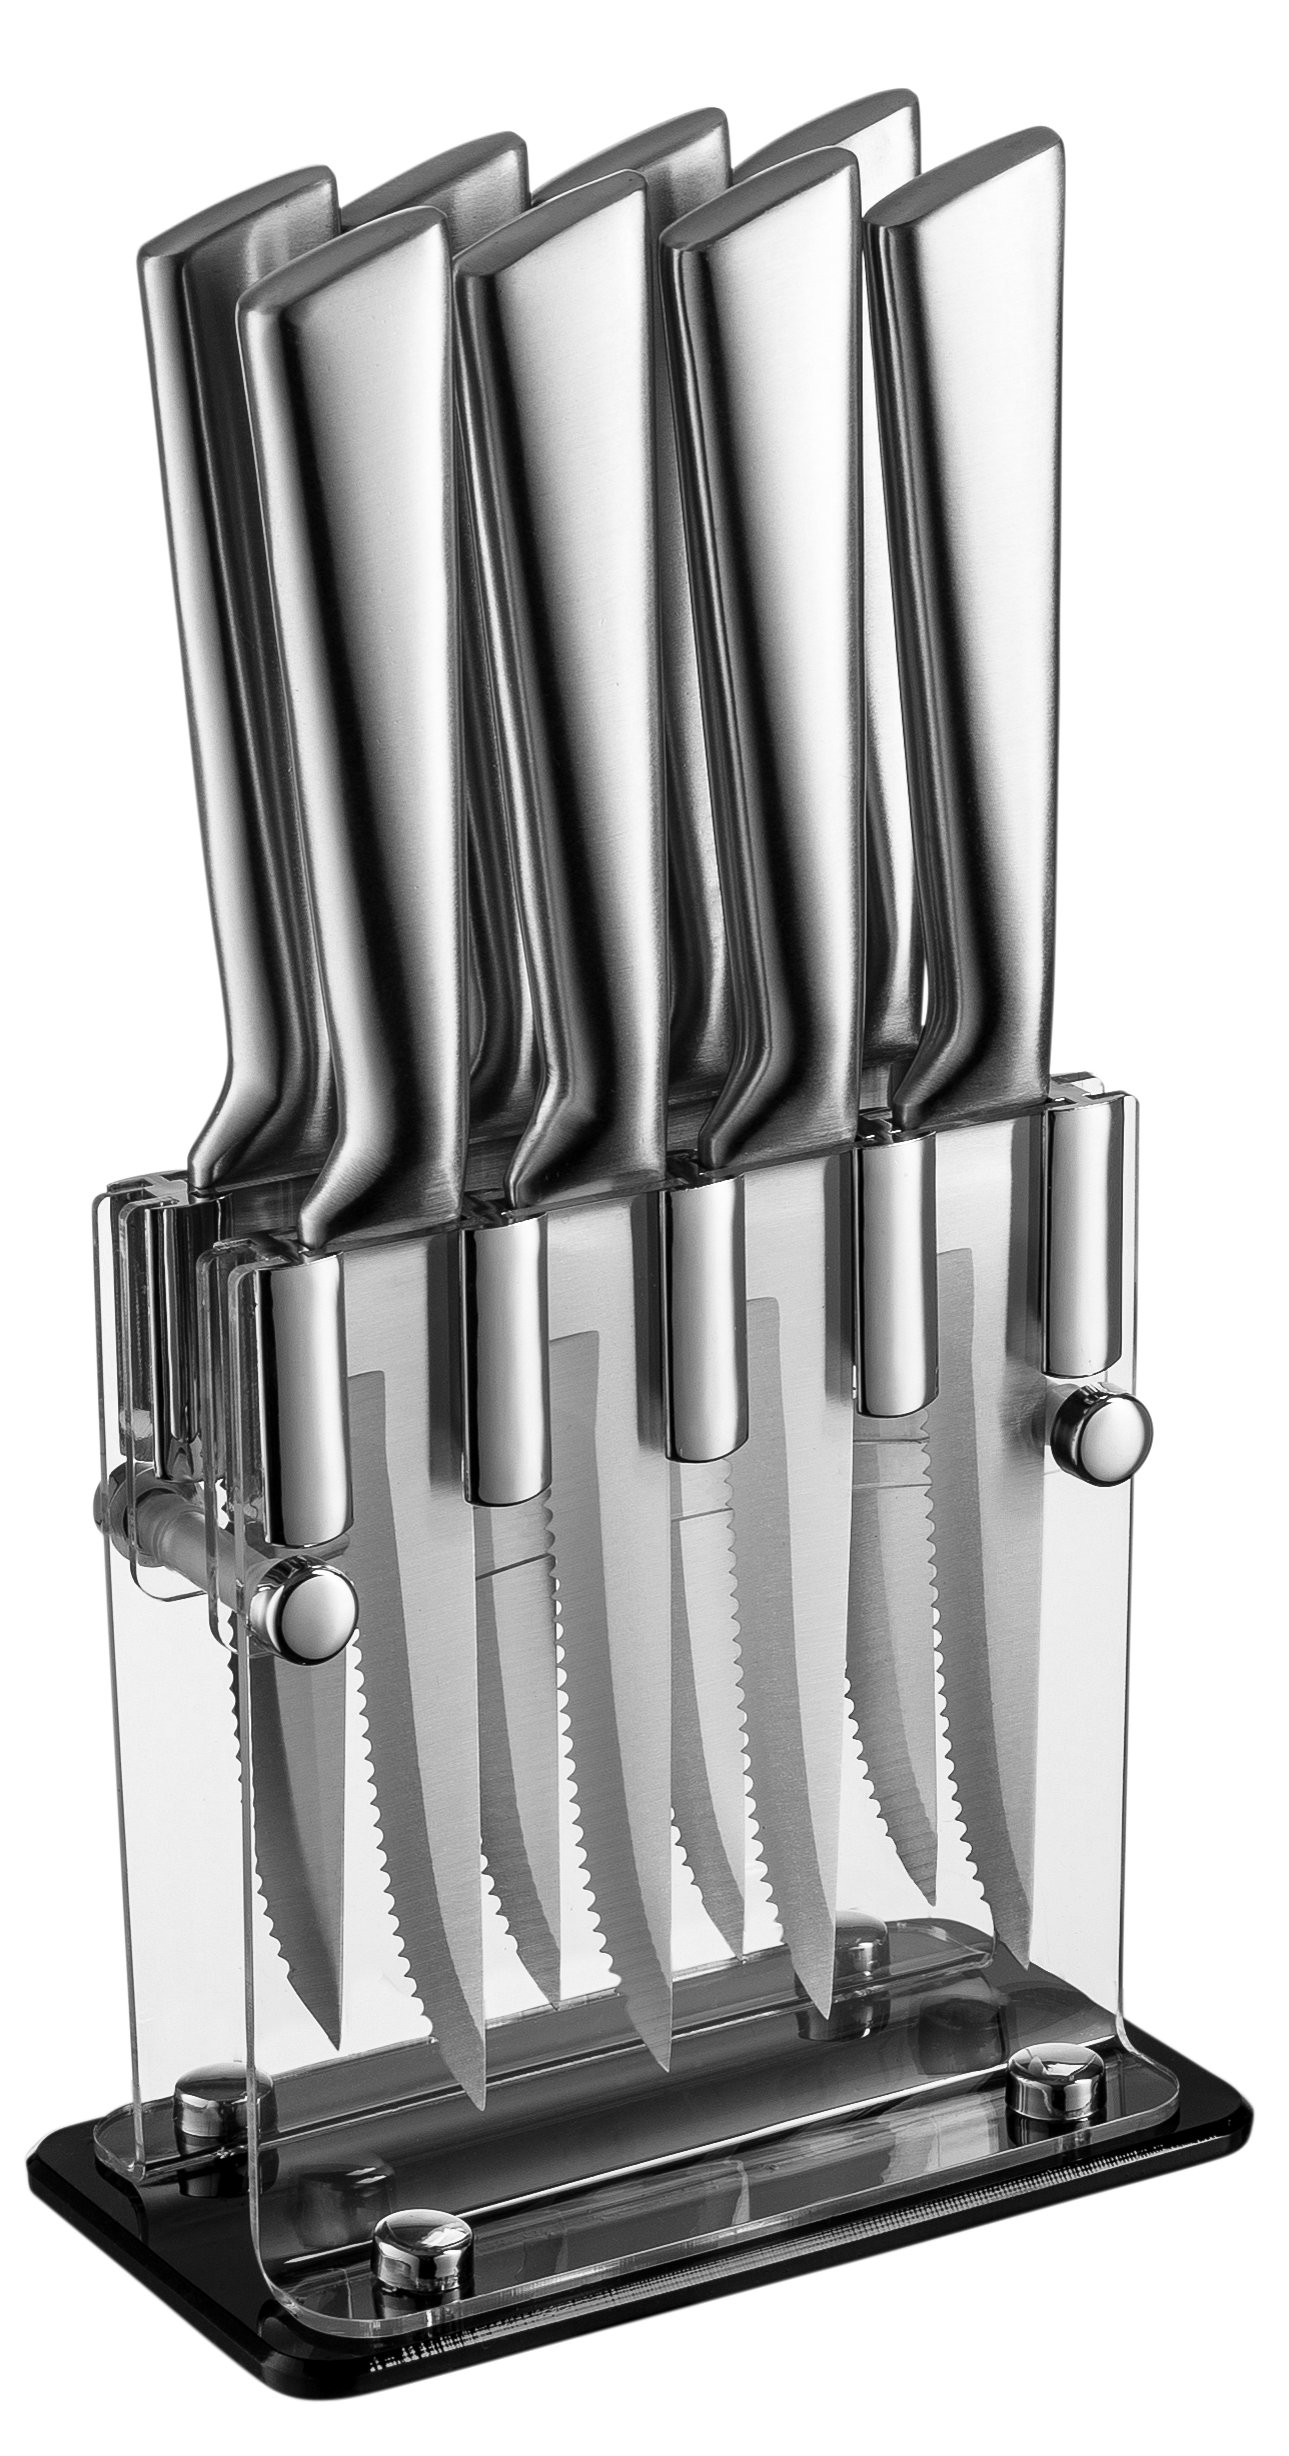 Stainless Steel Steak Knives With Block - High Quality Steak Knife Set Of 8 In Acrylic Stand by Classy Knives (Image #2)